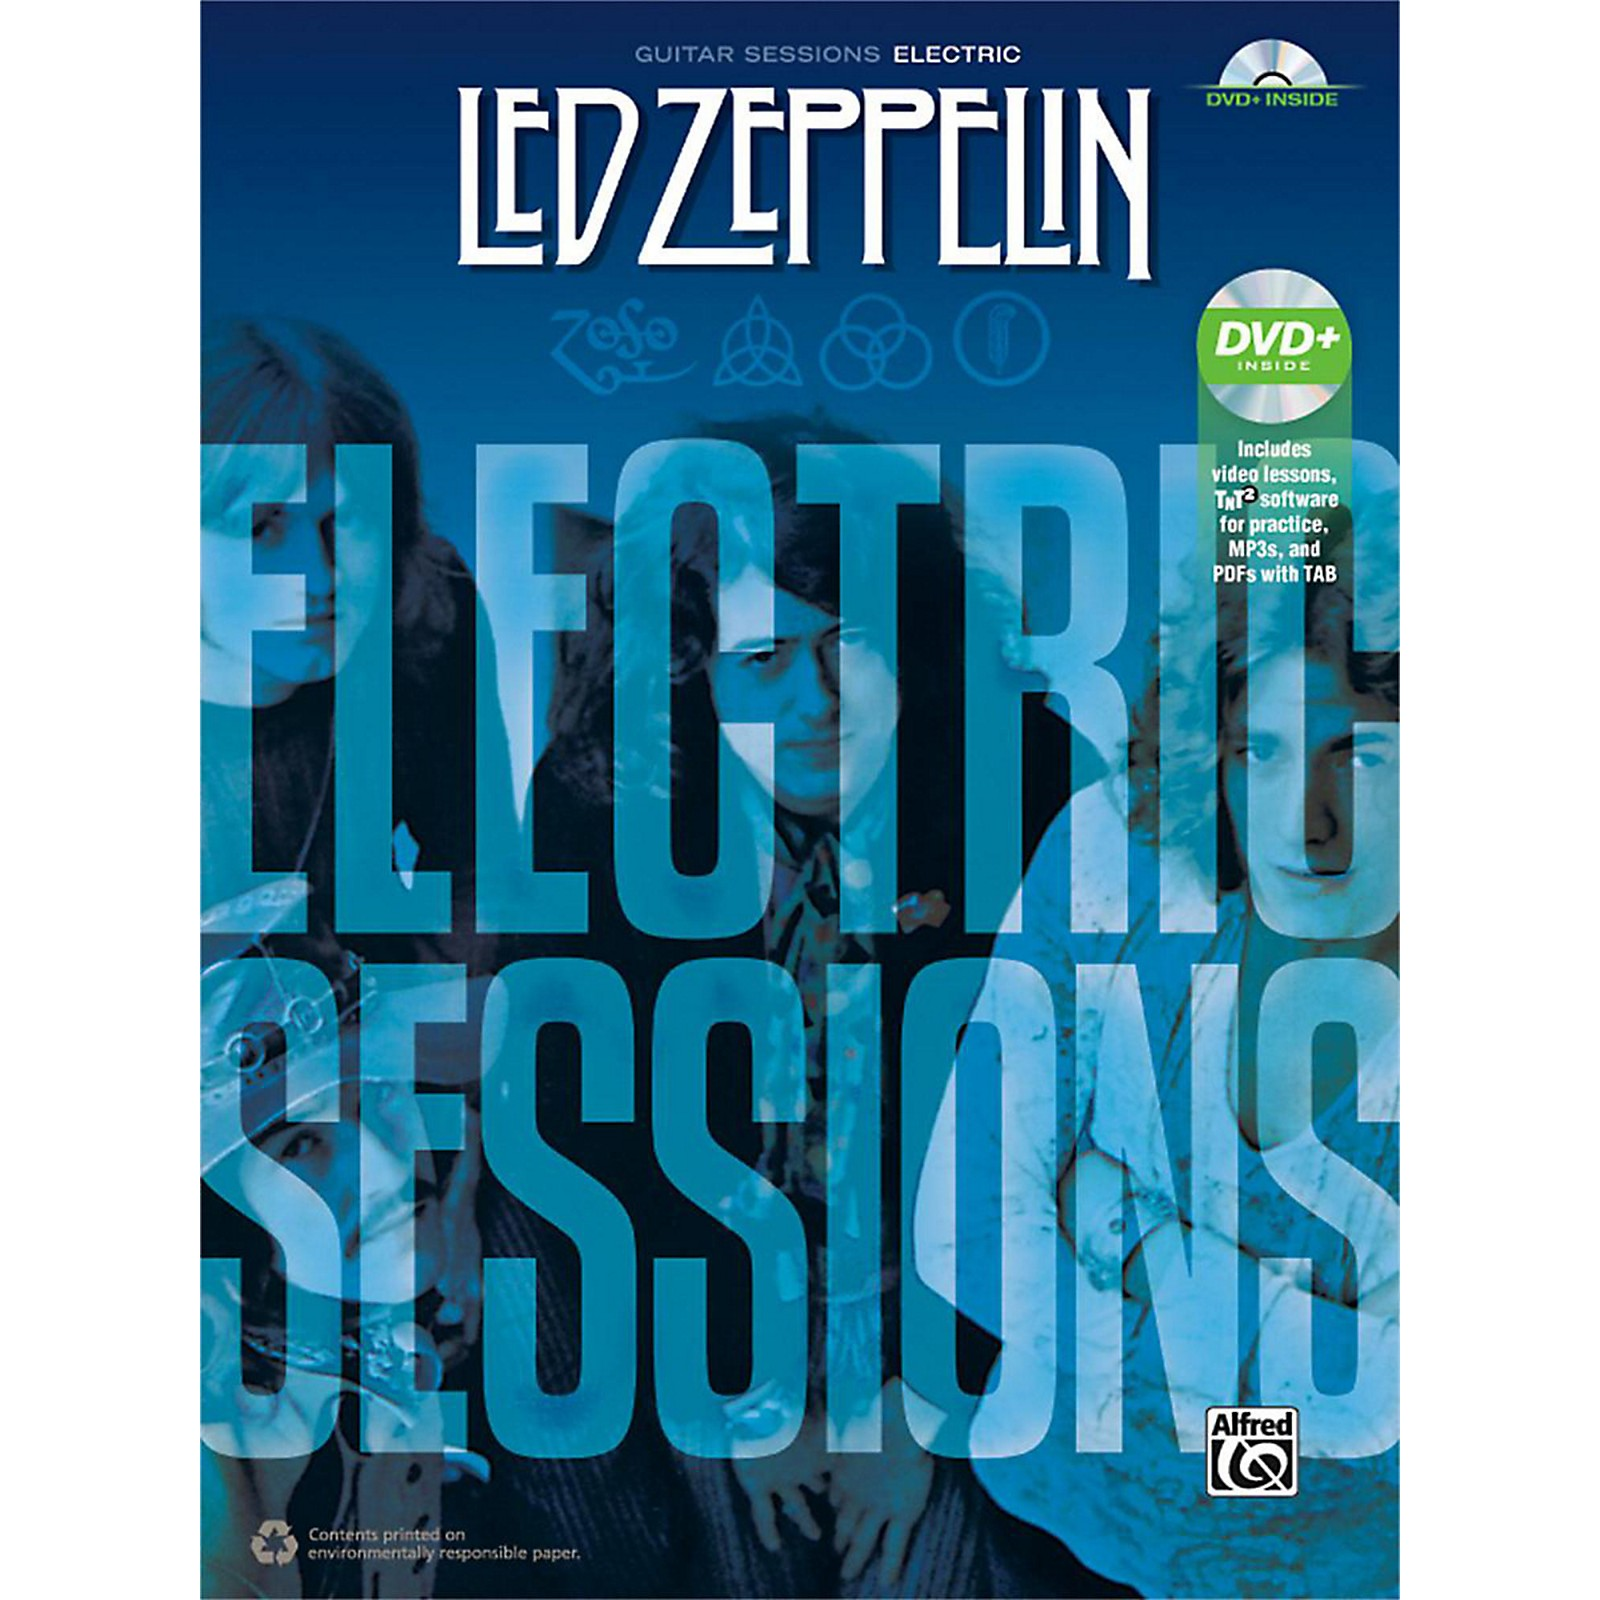 Alfred Led Zeppelin: Electric Sessions Guitar TAB Edition Book & DVD